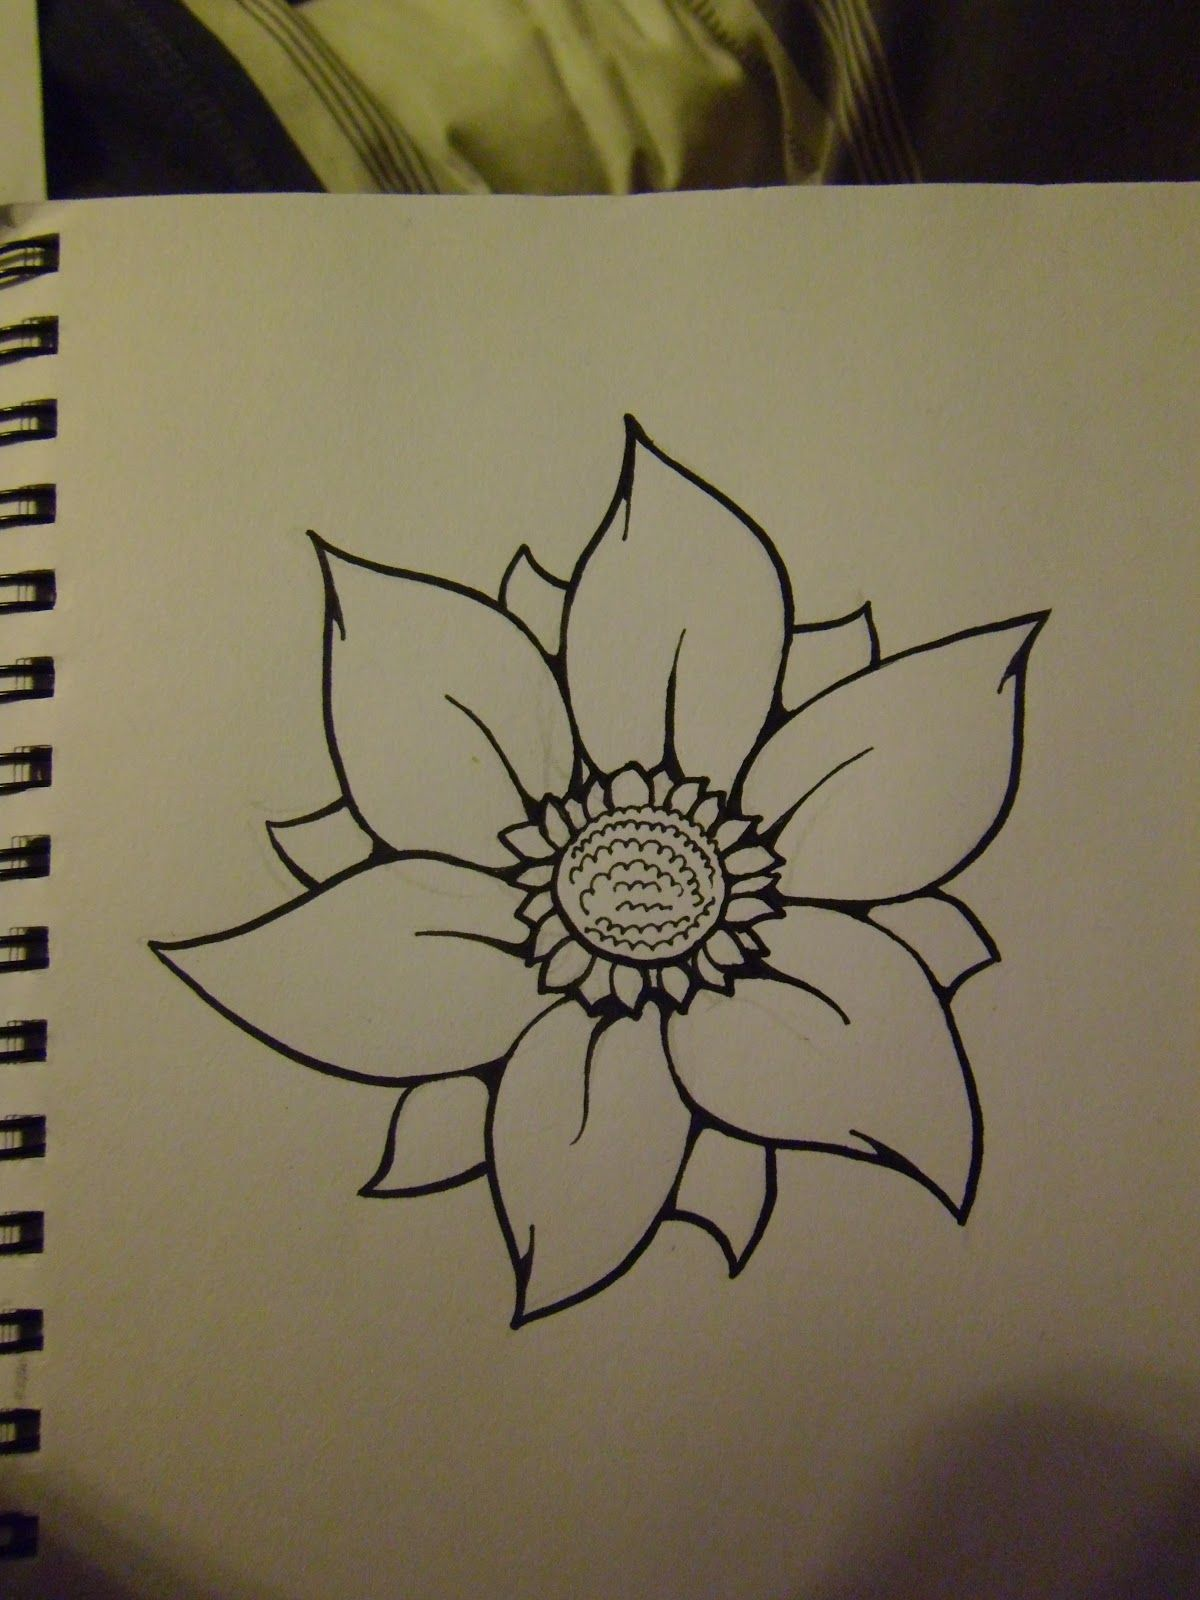 How to draw flowers step by step with pictures beautiful for Beautiful images to draw